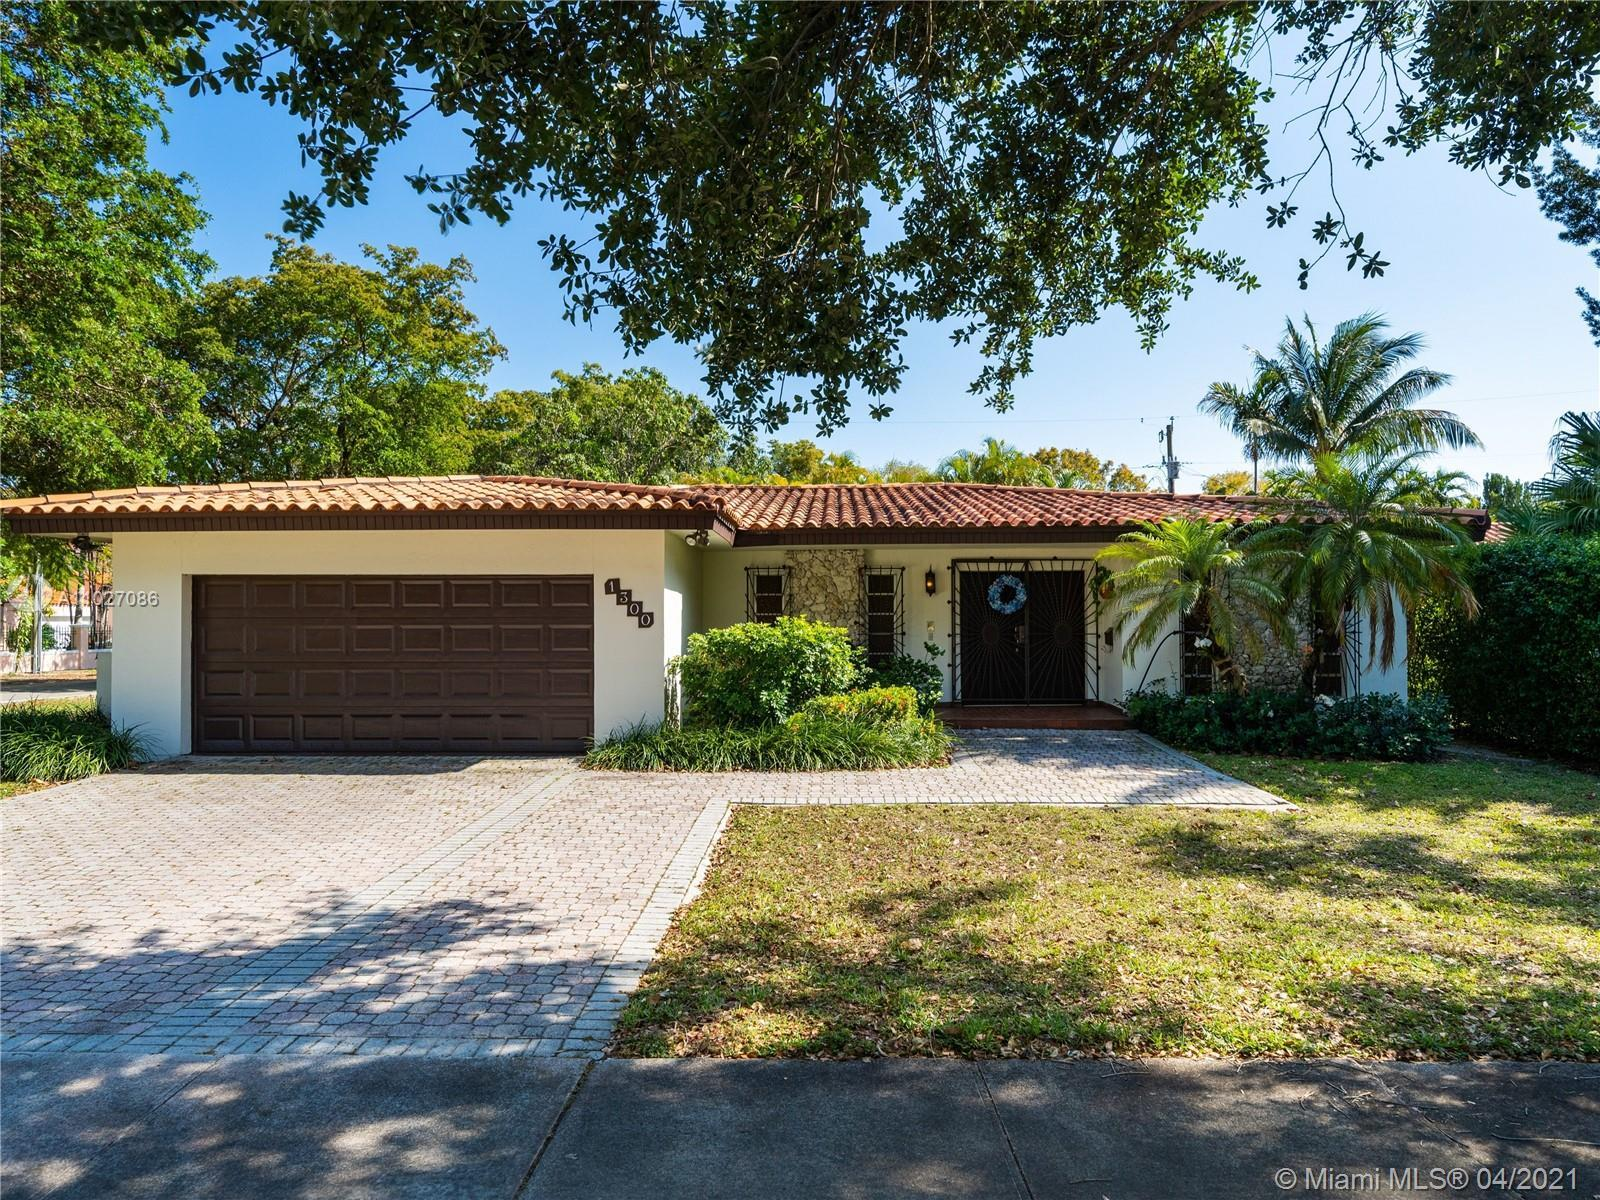 Charming home located on a large corner lot in the extremely desirable neighborhood of Coral Gables.